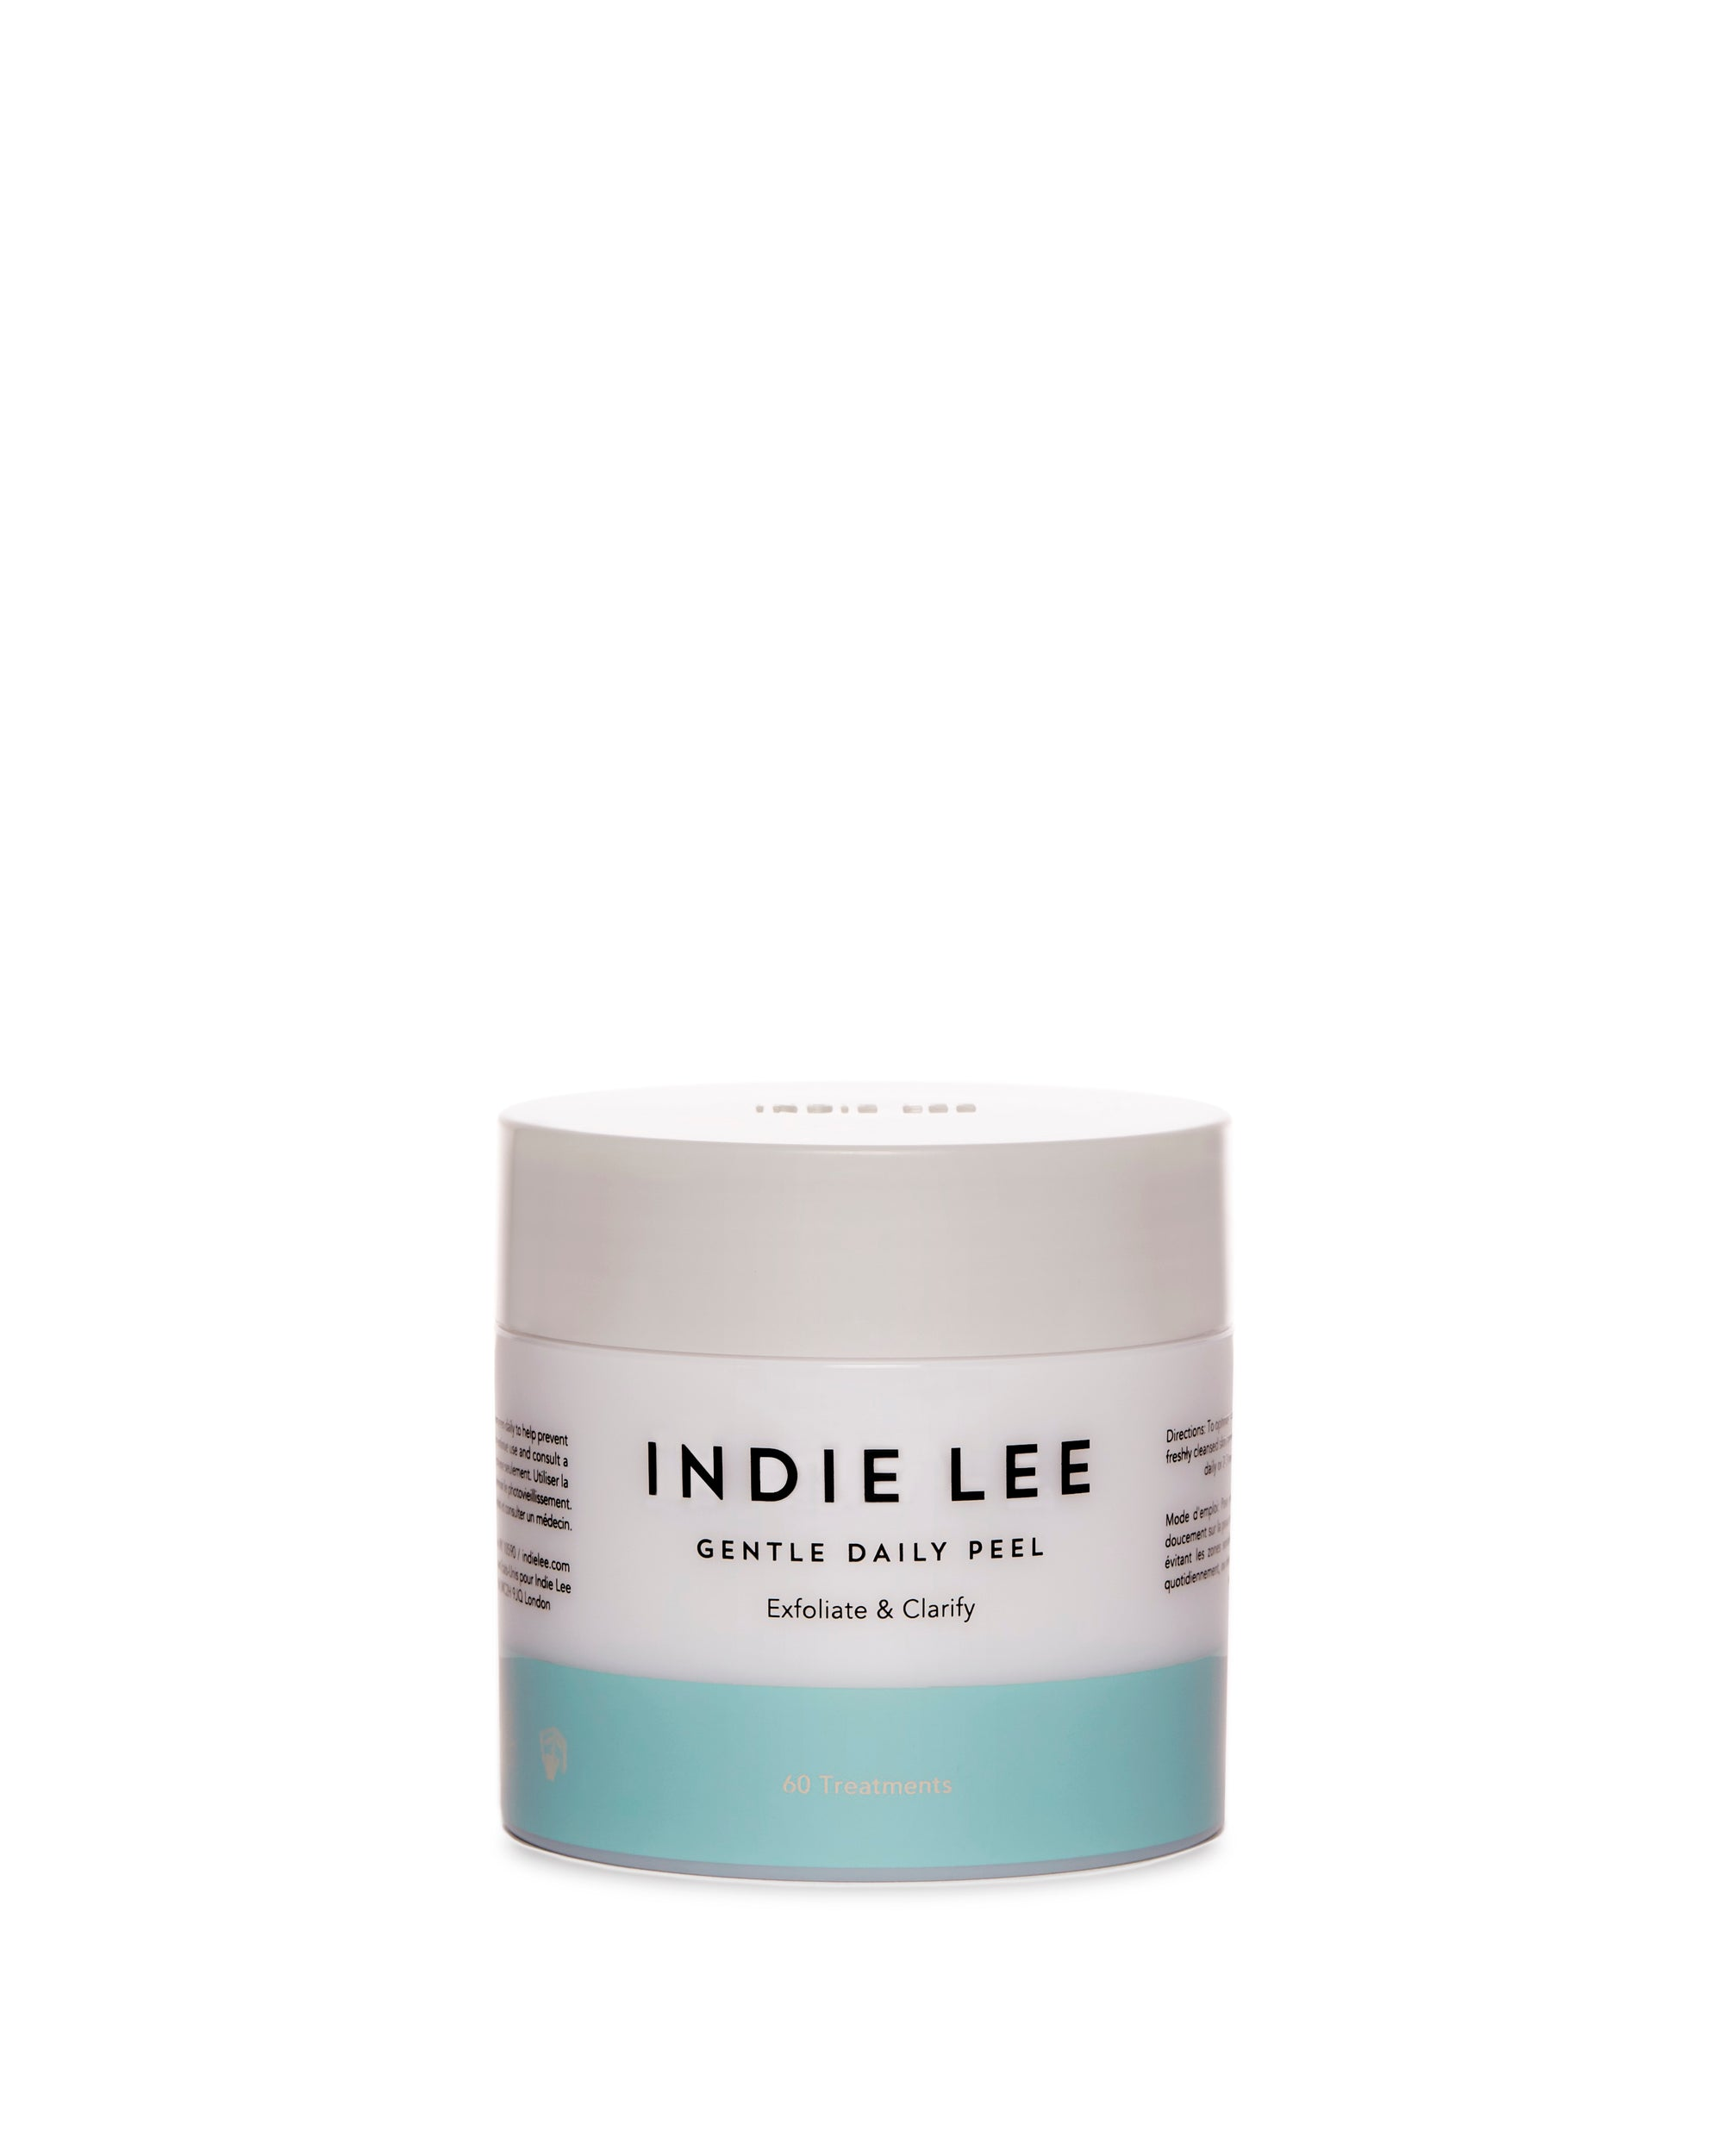 Indie Lee Gentle Daily Peel - AILLEA